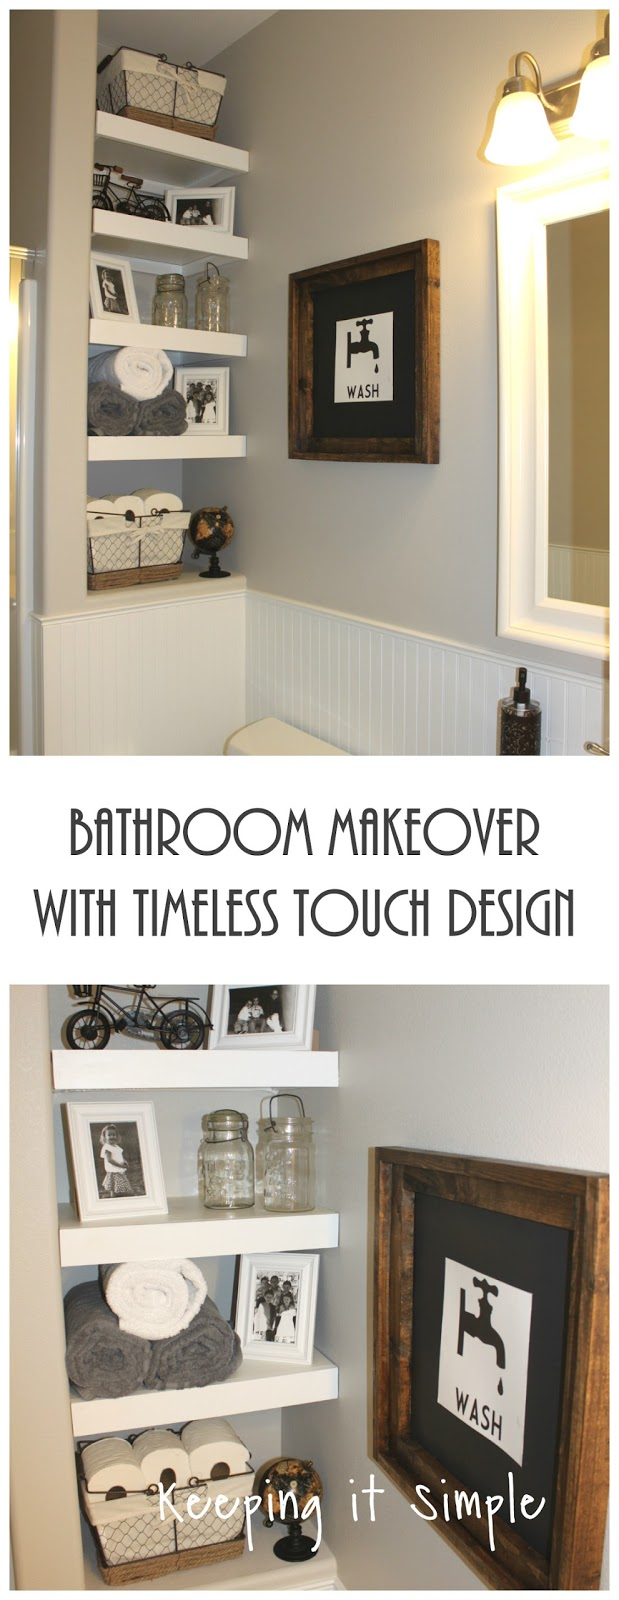 Bathroom Makeover with Timeless Touch Design • Keeping it Simple